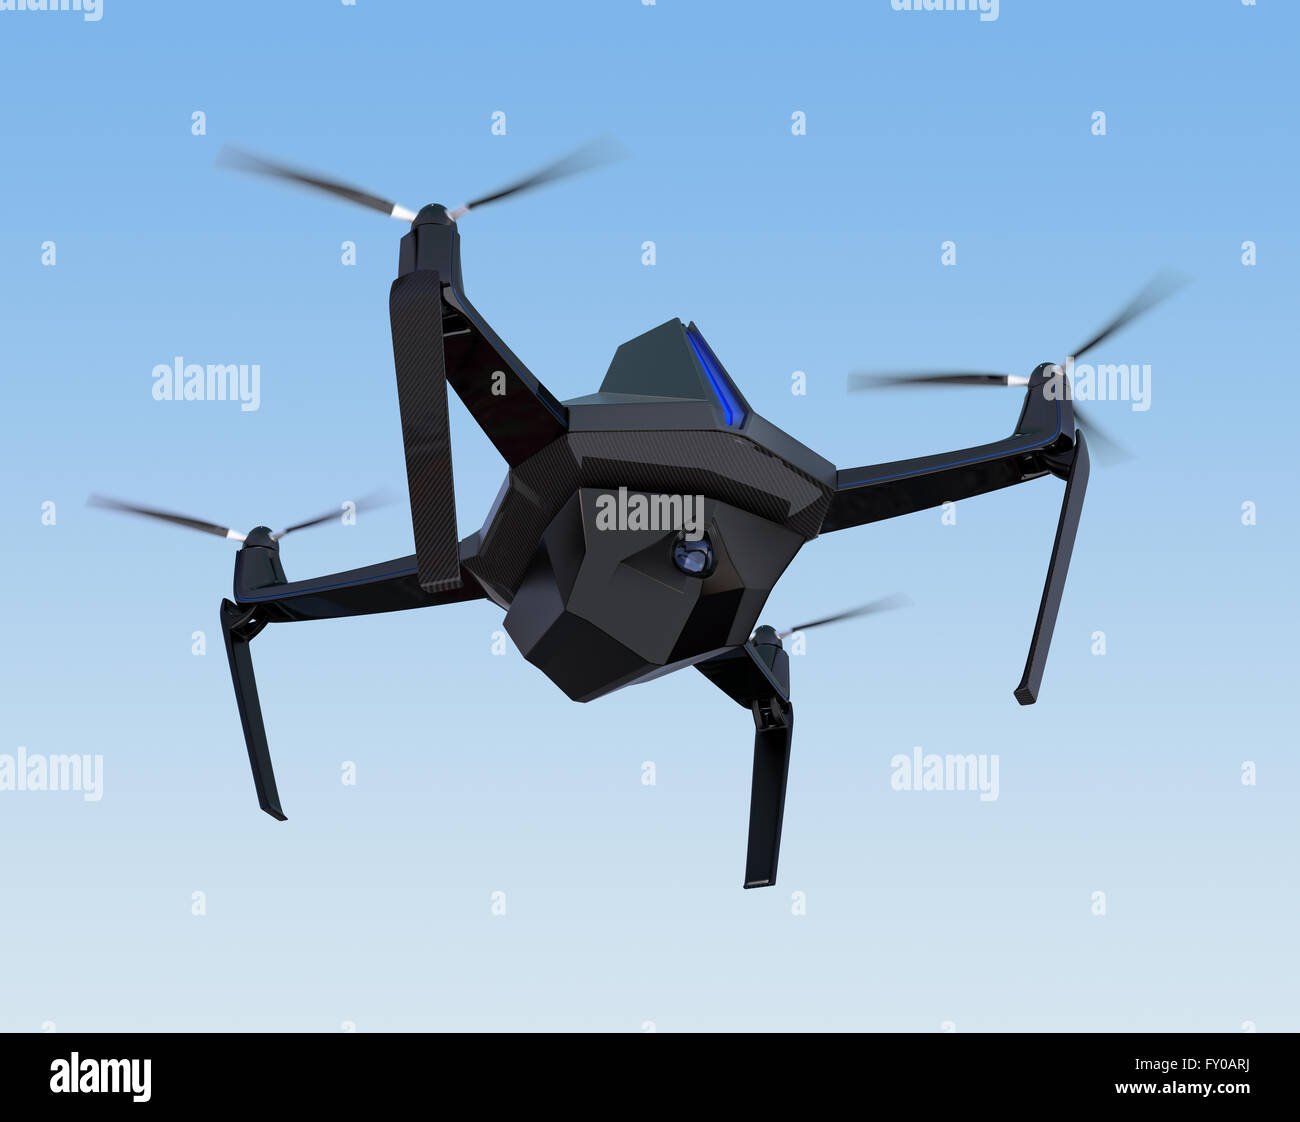 Autonomous Unmanned Drone With Surveillance Camera Flying In The Sky Original Design